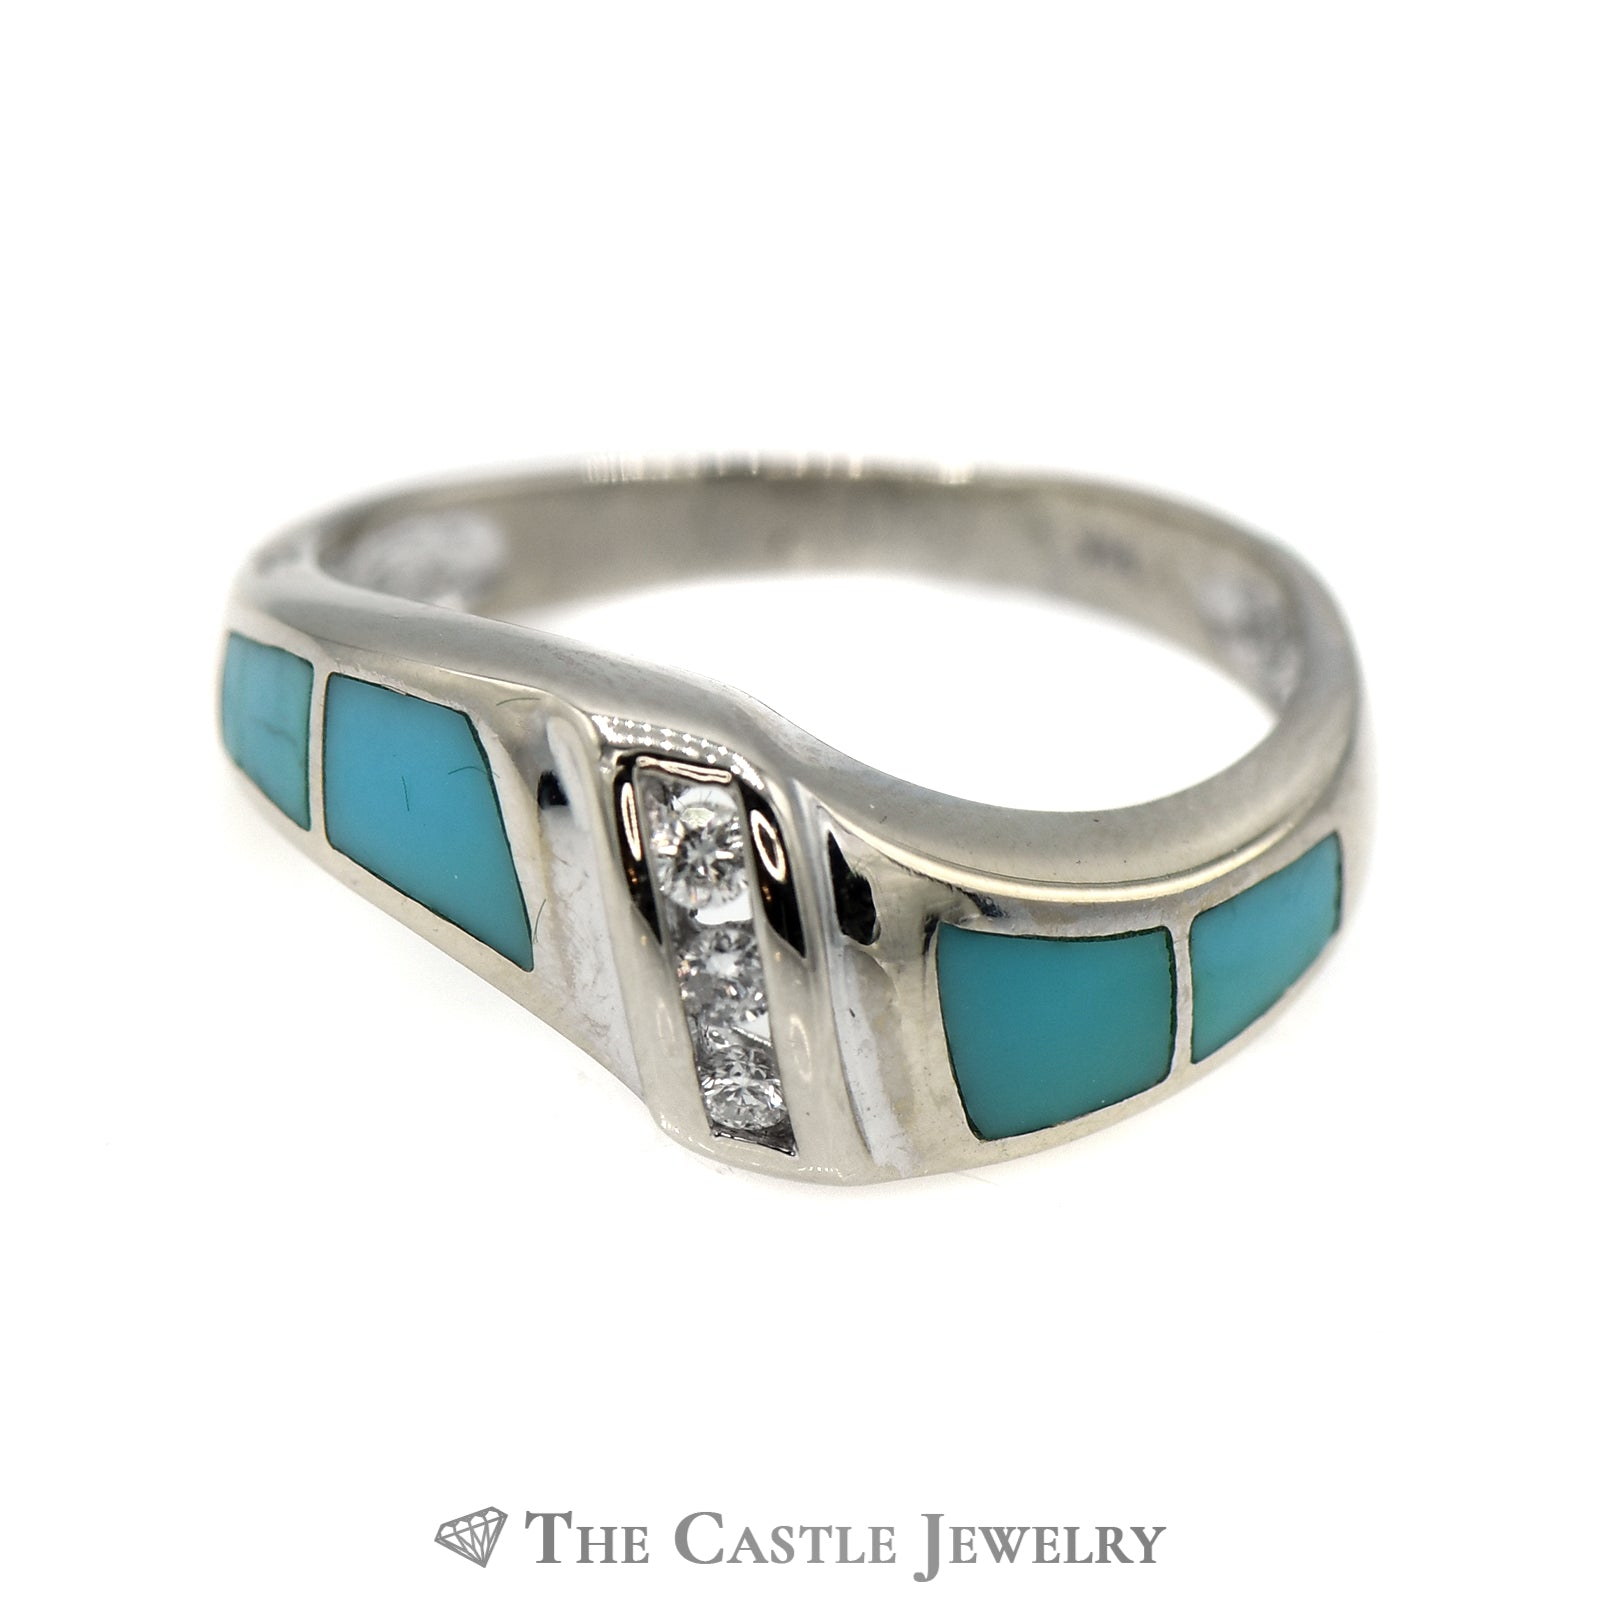 Triple Channel Set Diamond Band with Turquoise Inlay Accents in 14k White Gold